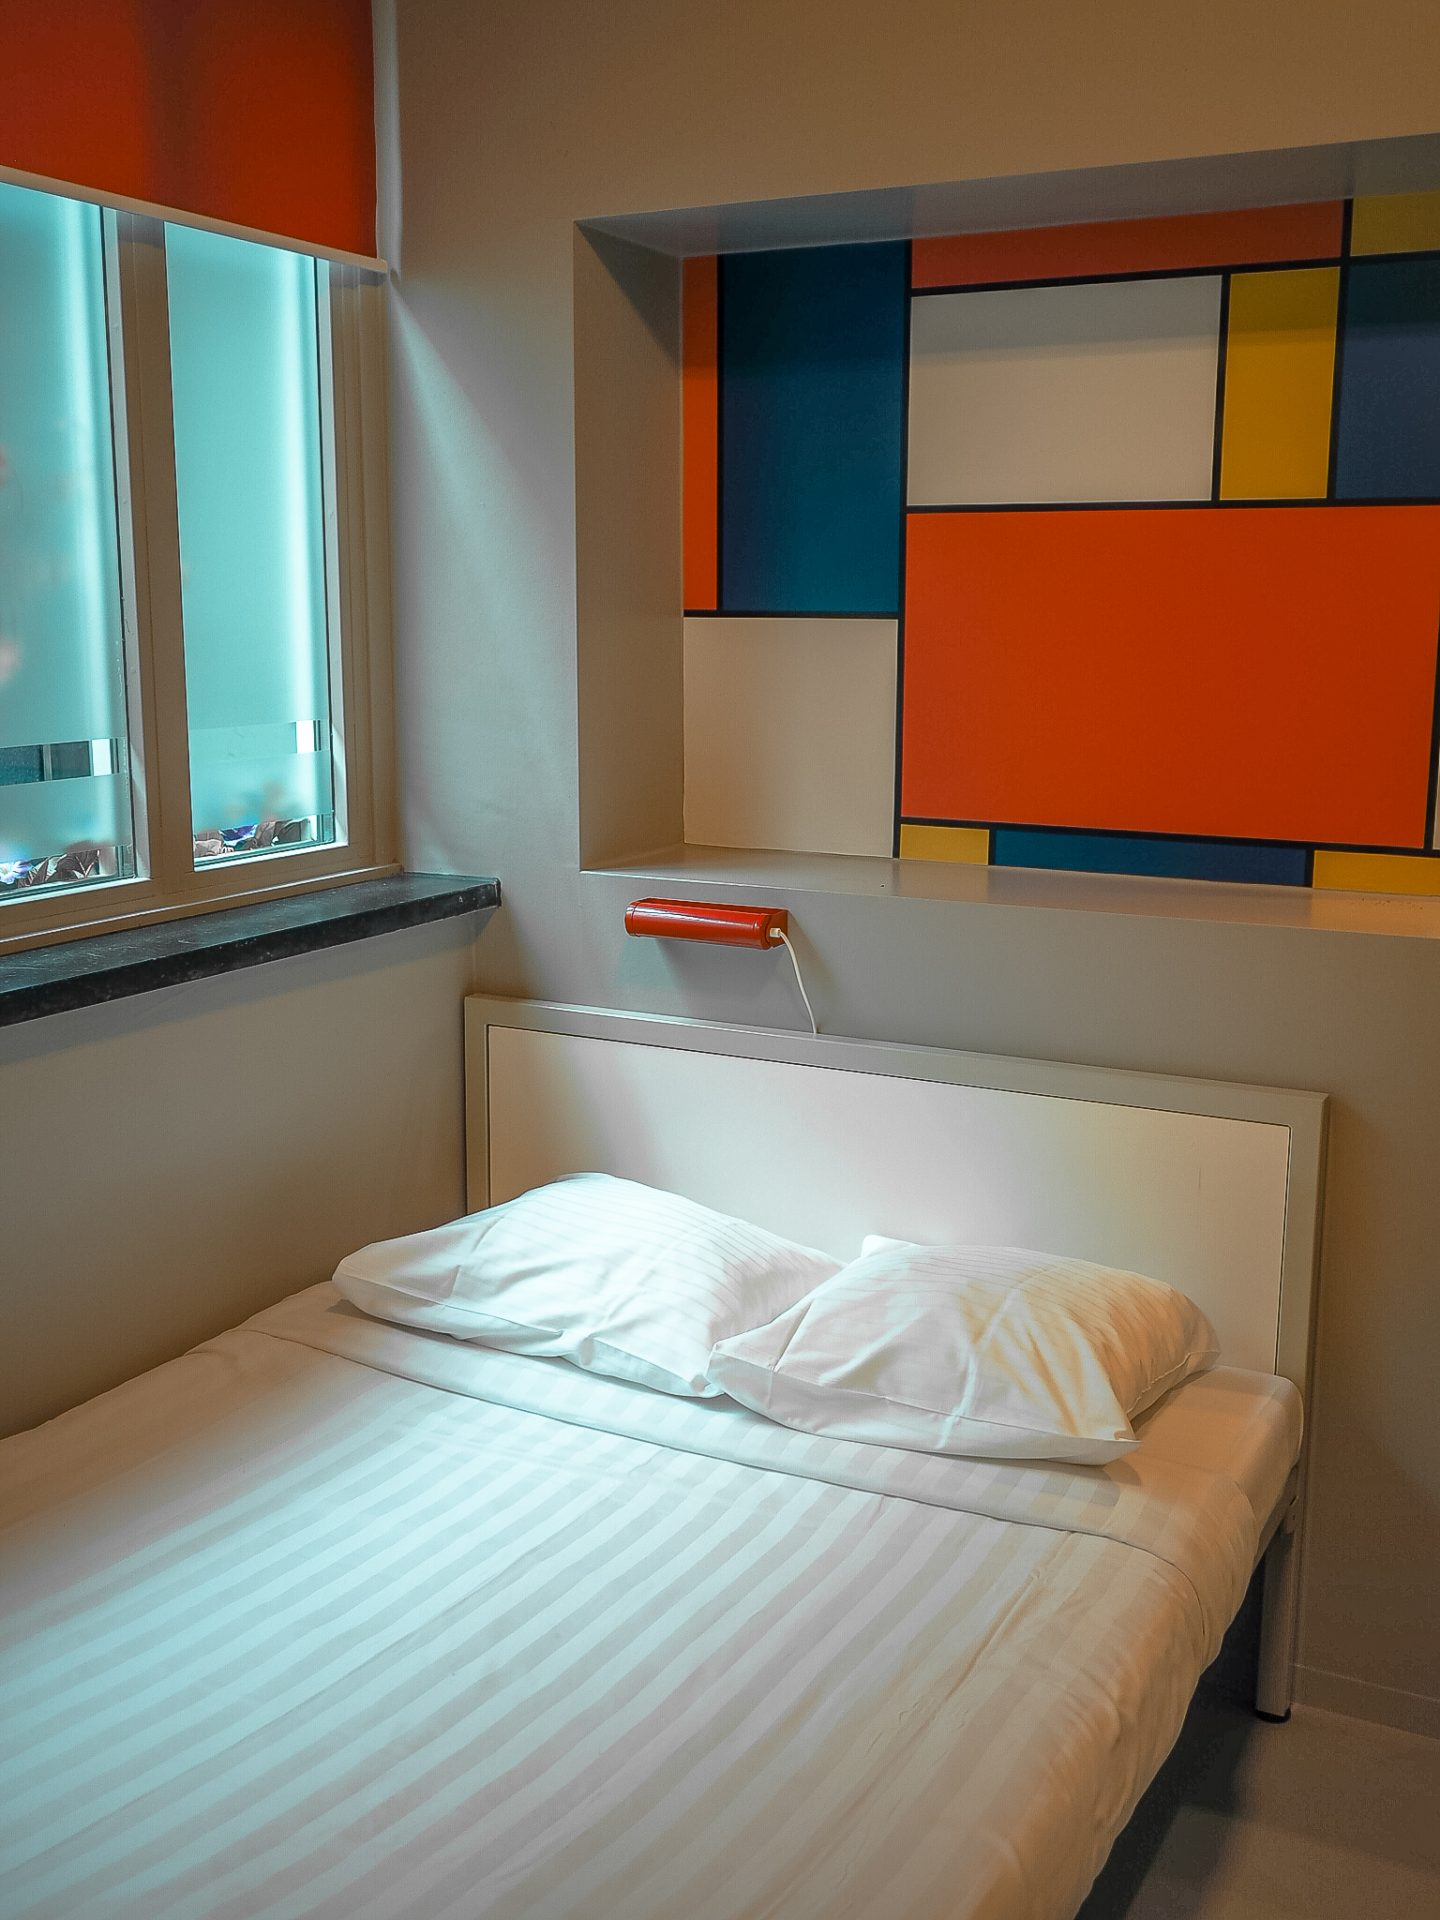 ClinkNoord Hostel Room